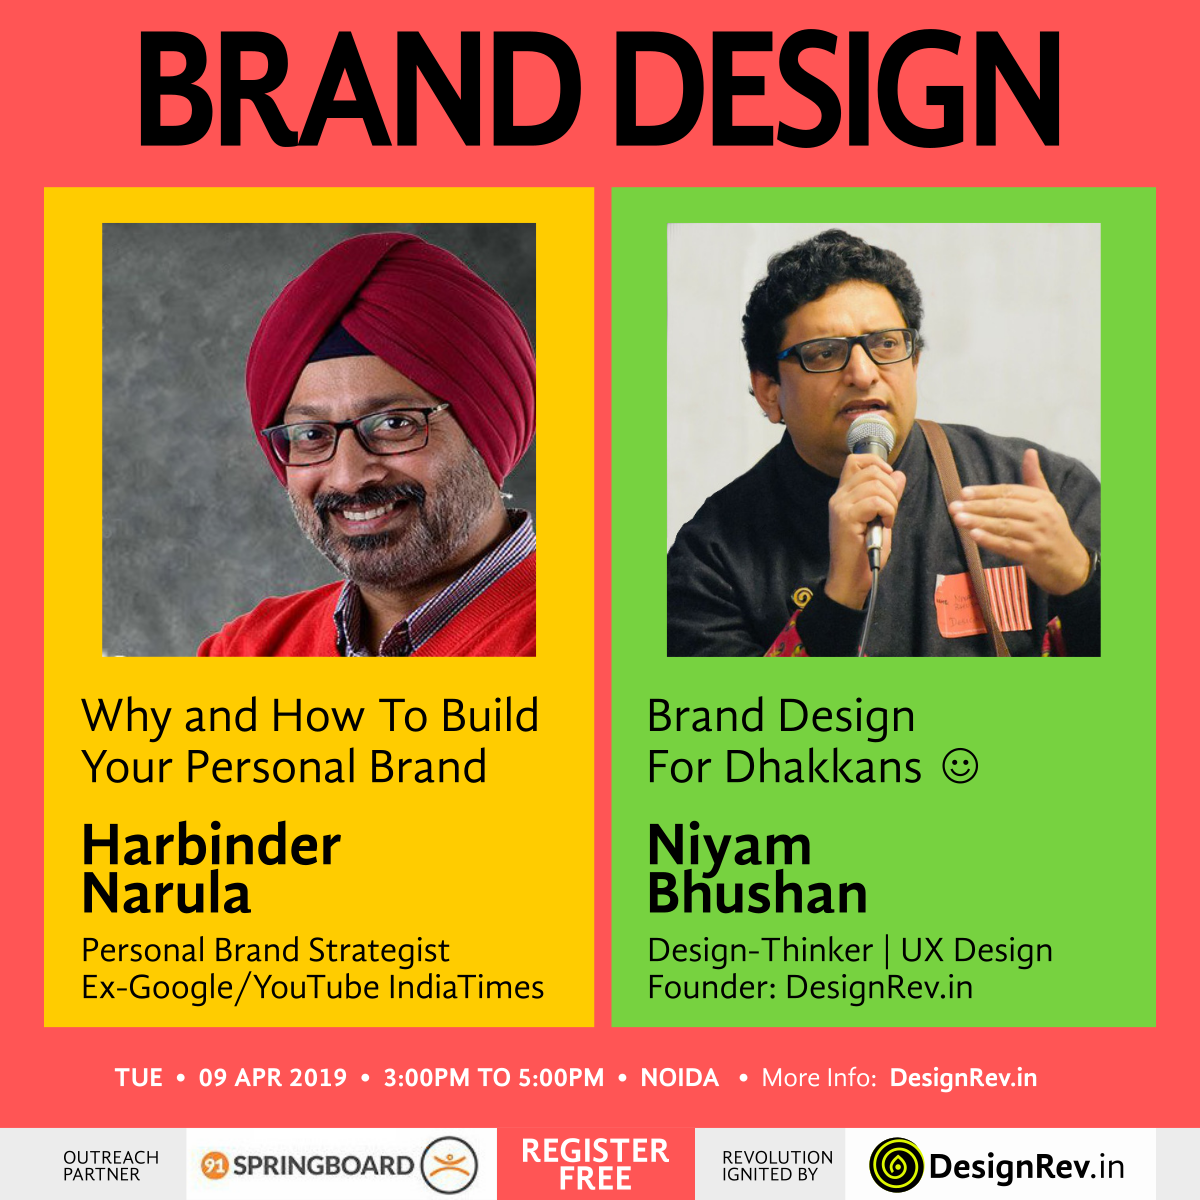 Brand Design Event by DesignRev with Harbinder Narula and Niyam Bhushan